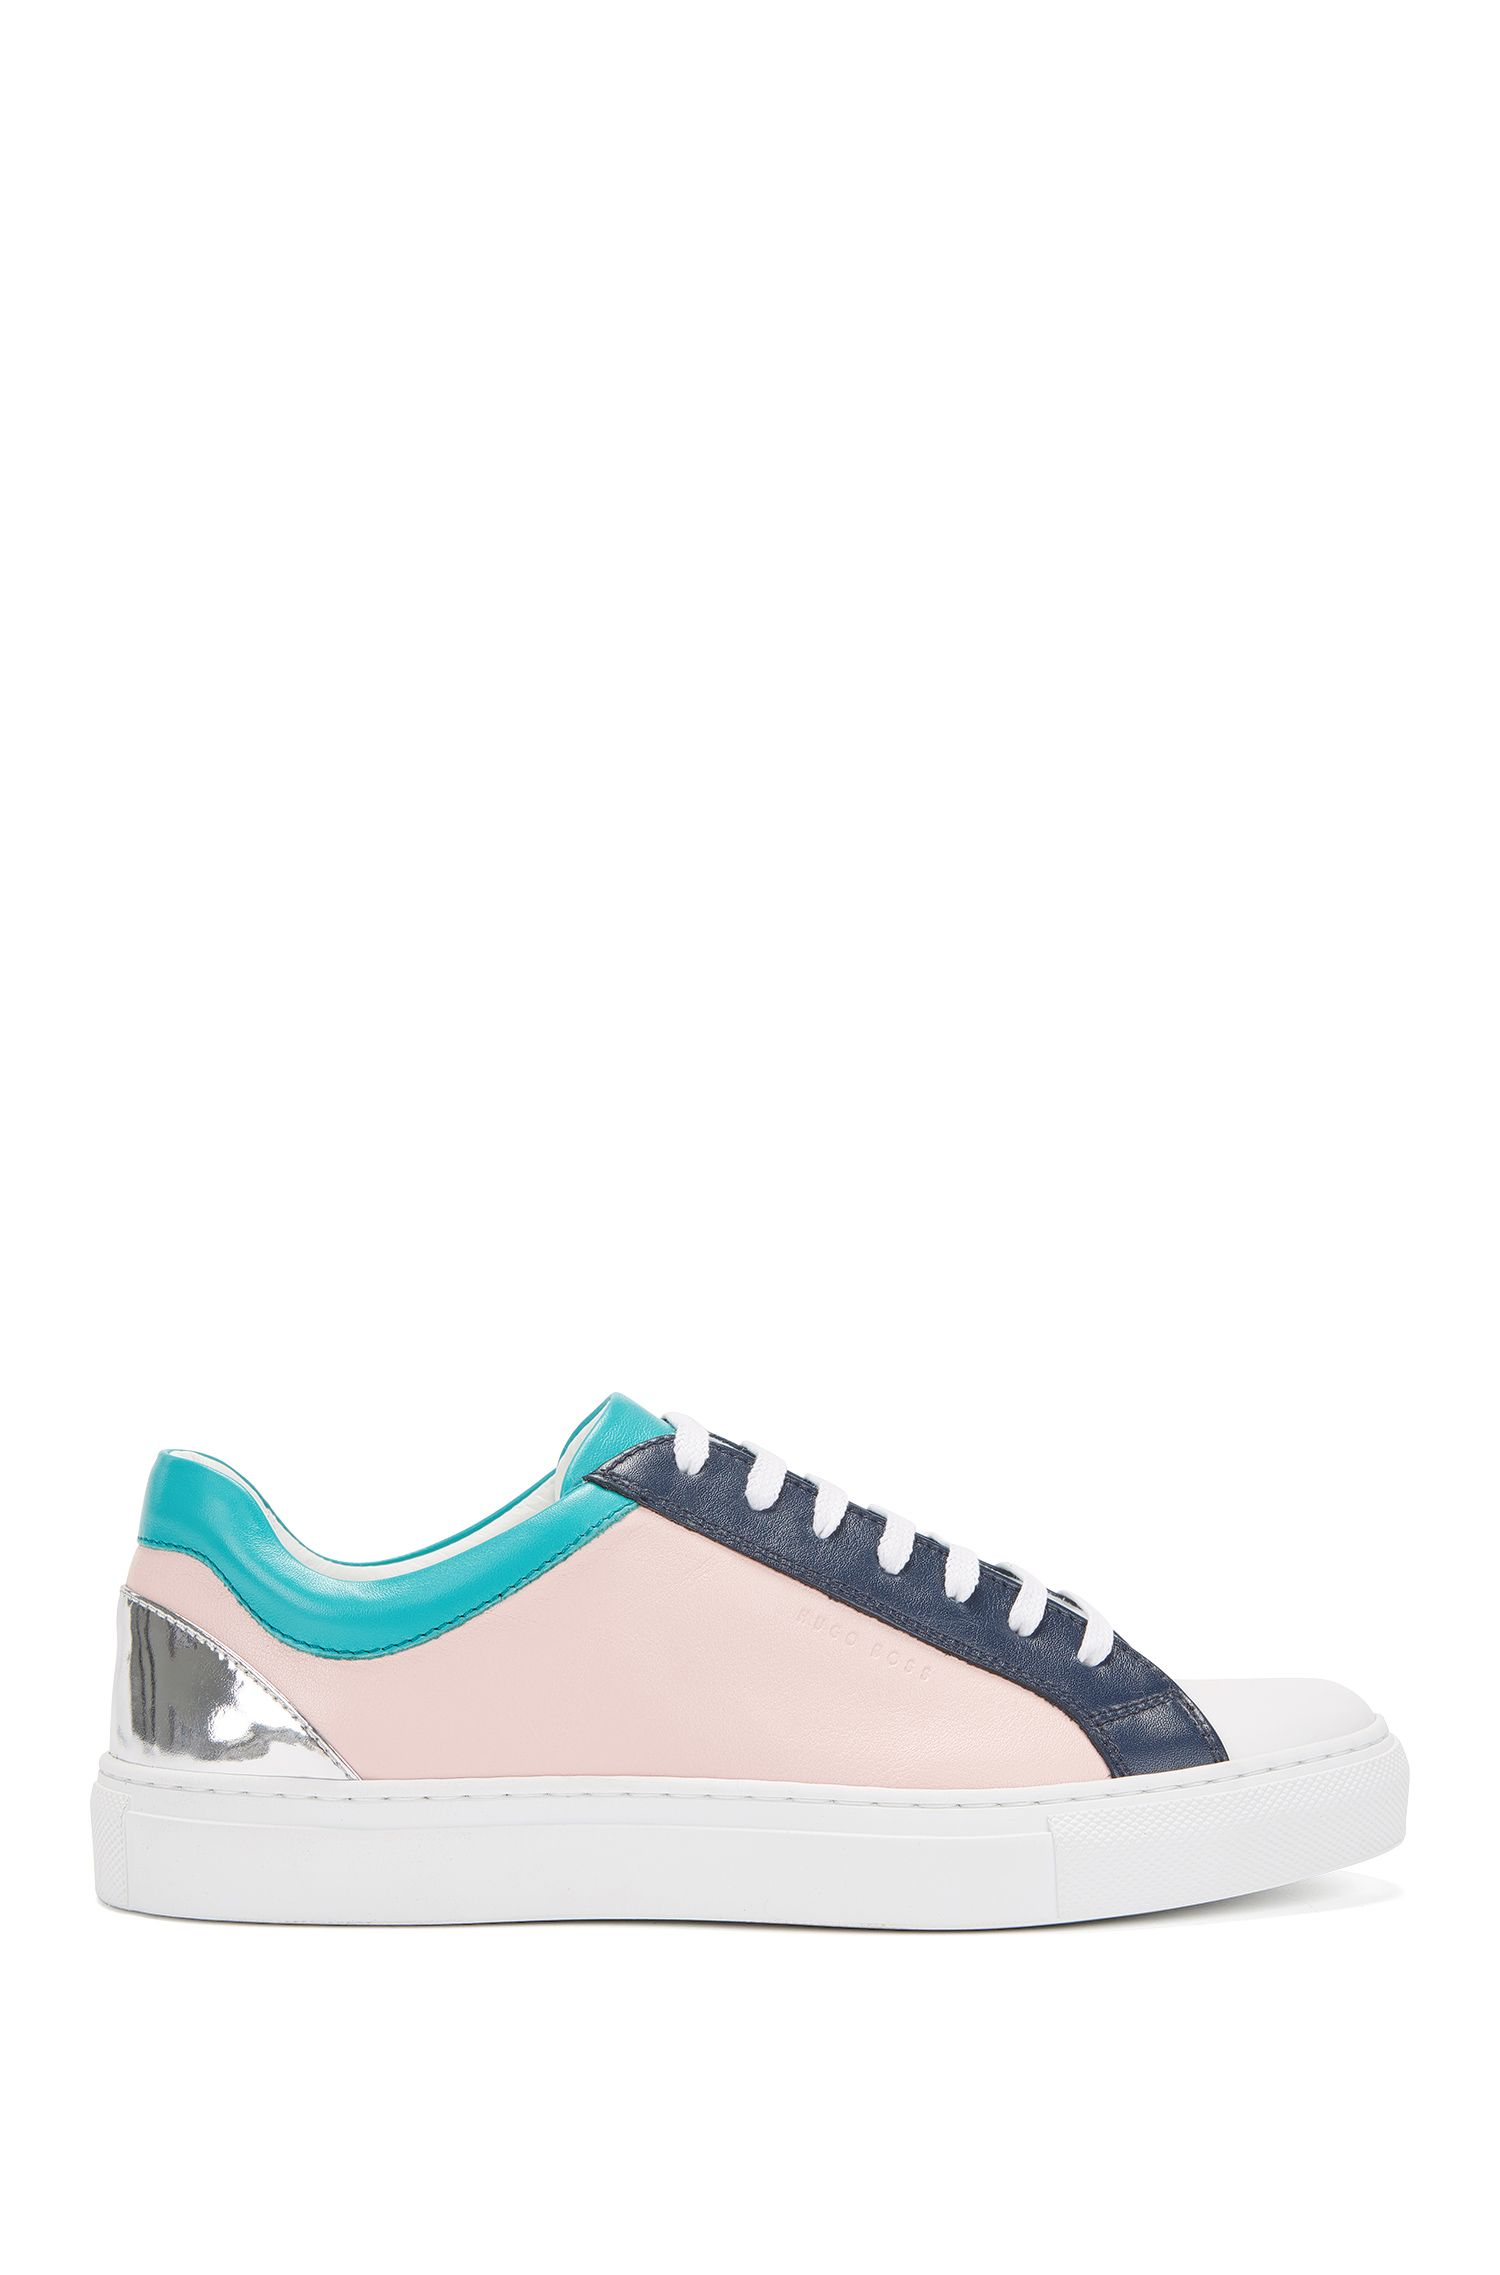 Gallery Collection Colorblocked Low-Cut Sneaker | Low Cut GC, light pink